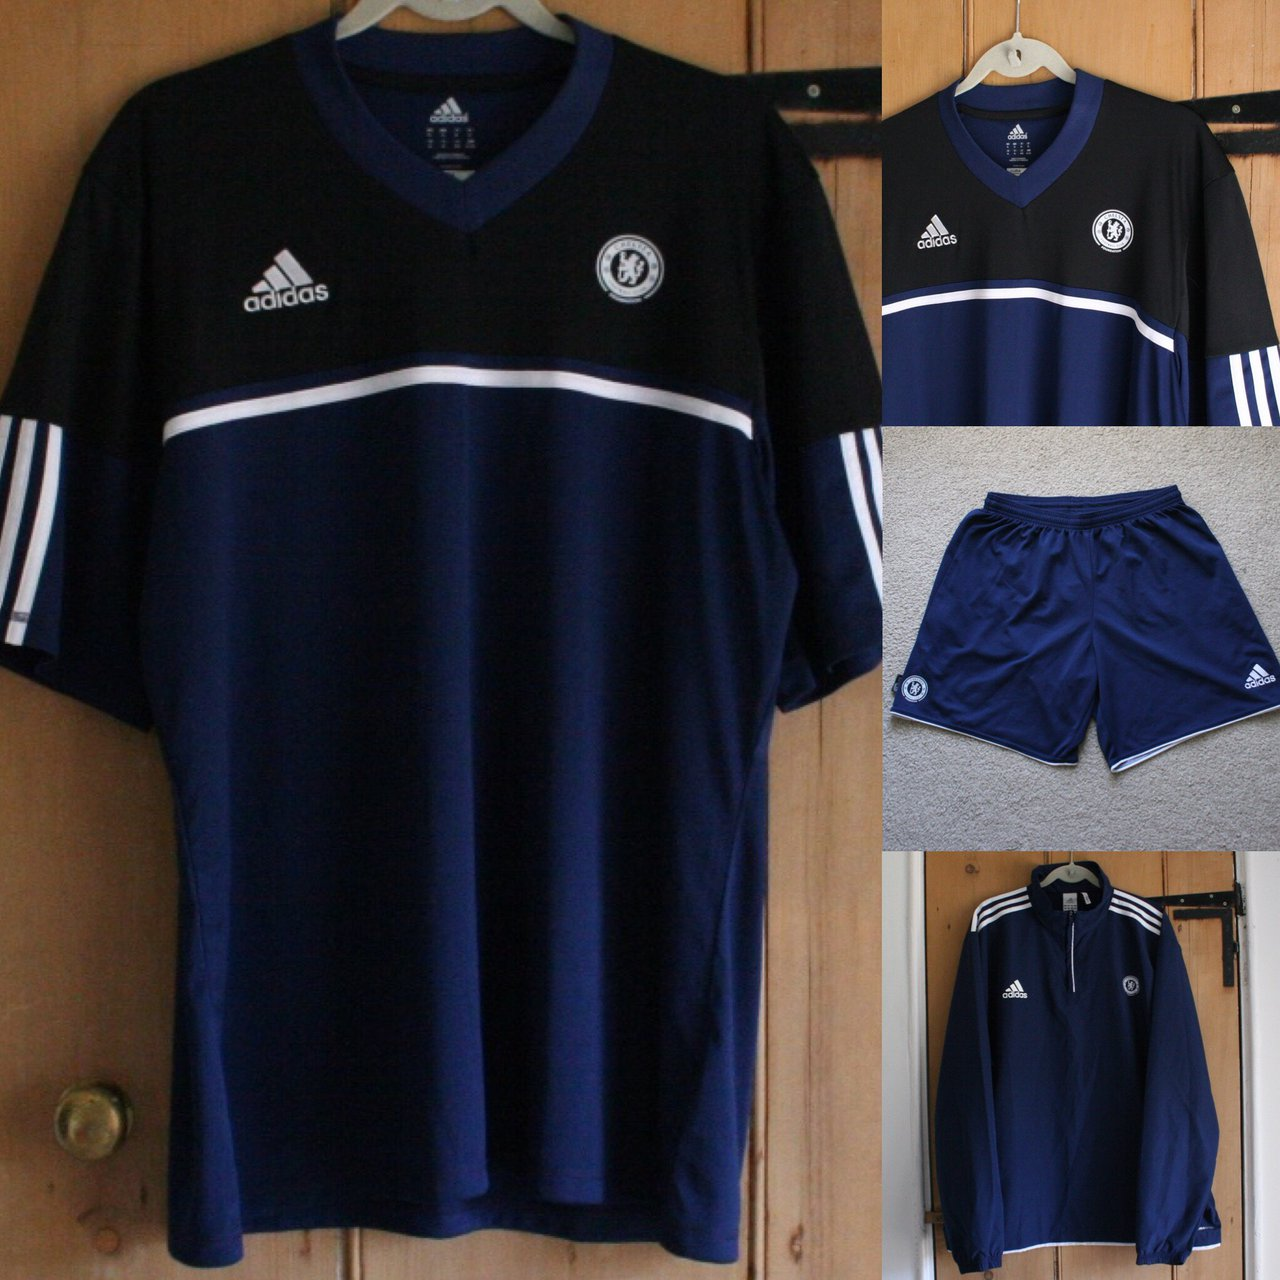 b13e7e5b31c47 Training Jersey Fc Chelsea Kit Football Adidas Official Full Depop 70qXZw